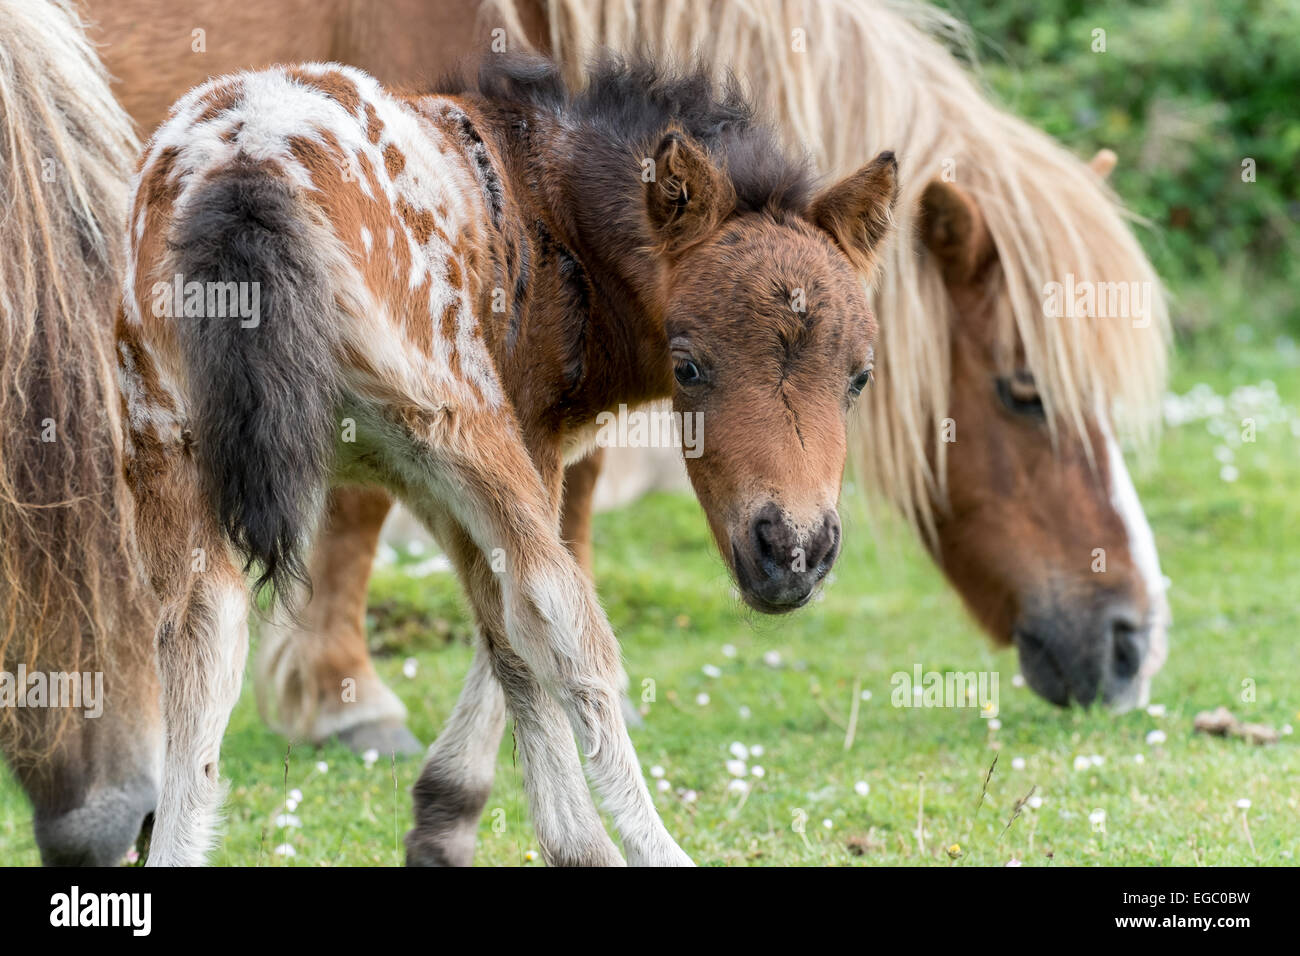 New Forest Ponies and Foal in National Park Stock Photo